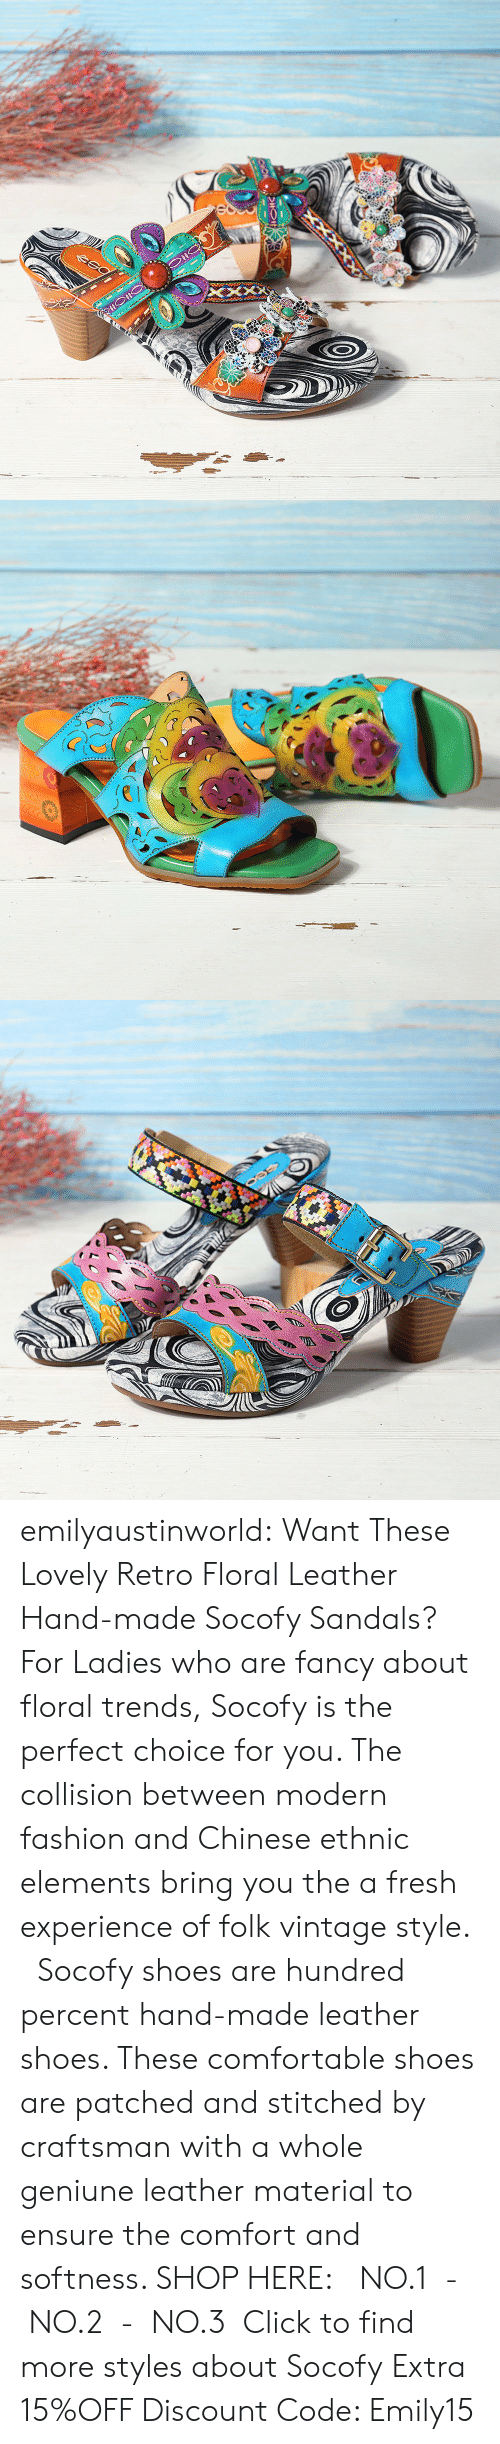 Click, Comfortable, and Fashion: emilyaustinworld: Want These Lovely Retro Floral Leather Hand-made Socofy Sandals?  For Ladies who are fancy about floral trends, Socofy is the perfect choice for you. The collision between modern fashion and Chinese ethnic elements bring you the a fresh experience of folk vintage style.   Socofy shoes are hundred percent hand-made leather shoes. These comfortable shoes are patched and stitched by craftsman with a whole geniune leather material to ensure the comfort and softness.  SHOP HERE: NO.1- NO.2- NO.3 Click to find more styles about Socofy Extra 15%OFF Discount Code: Emily15